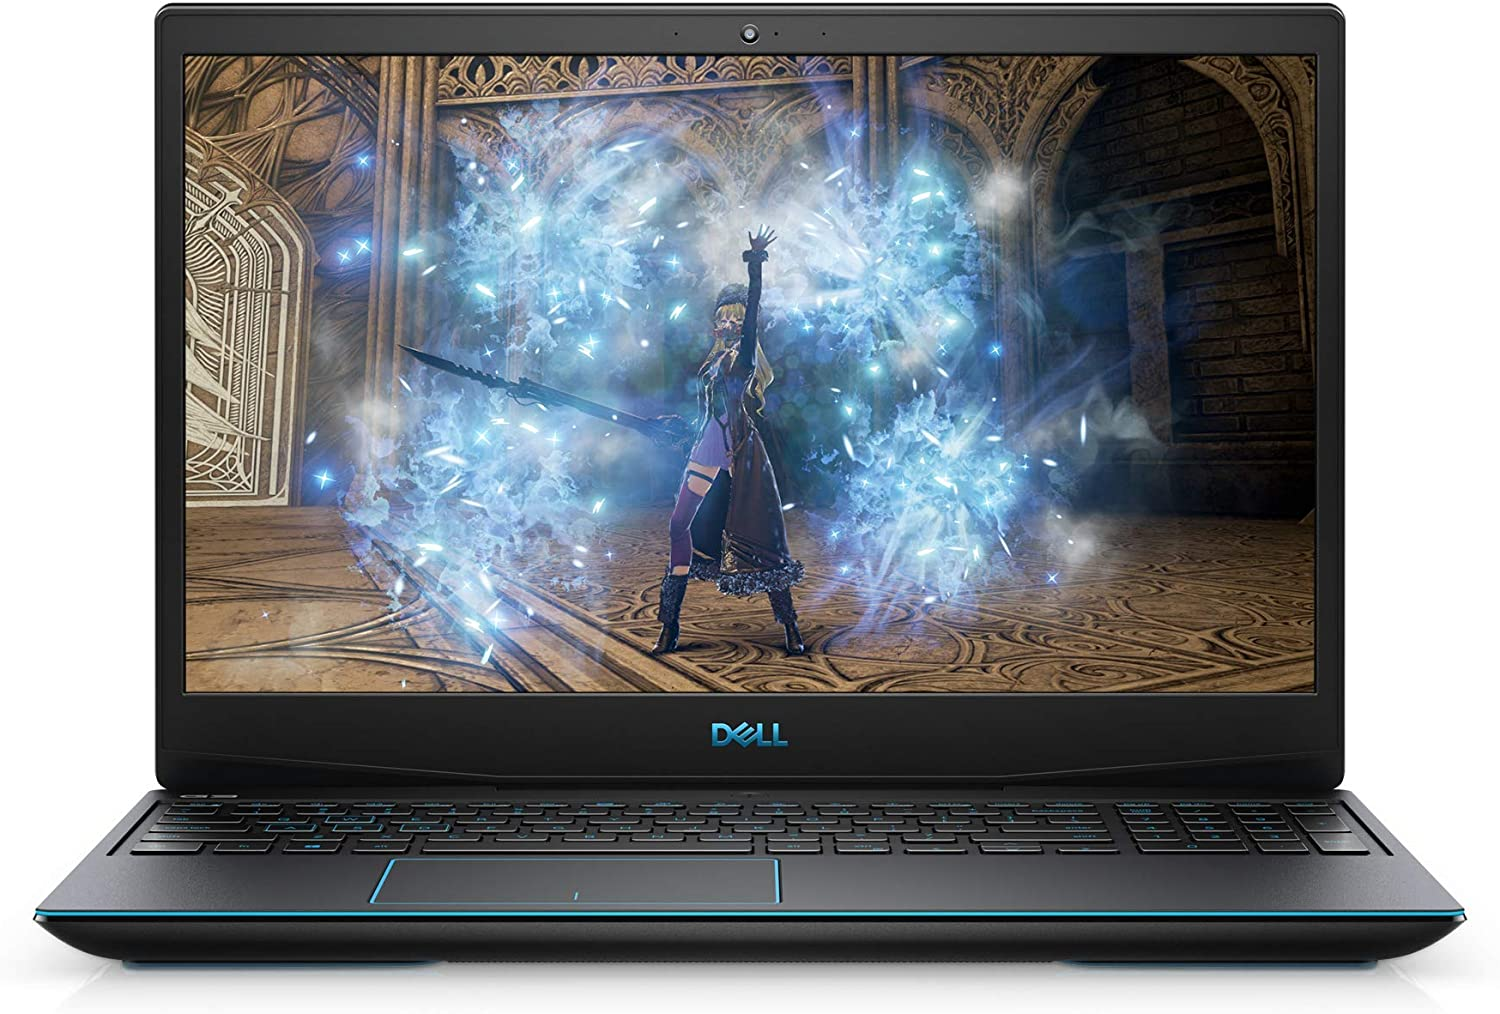 Dell G3 15 3500 15.6 inch FHD with 144Hz Refresh Rate Gaming Laptop